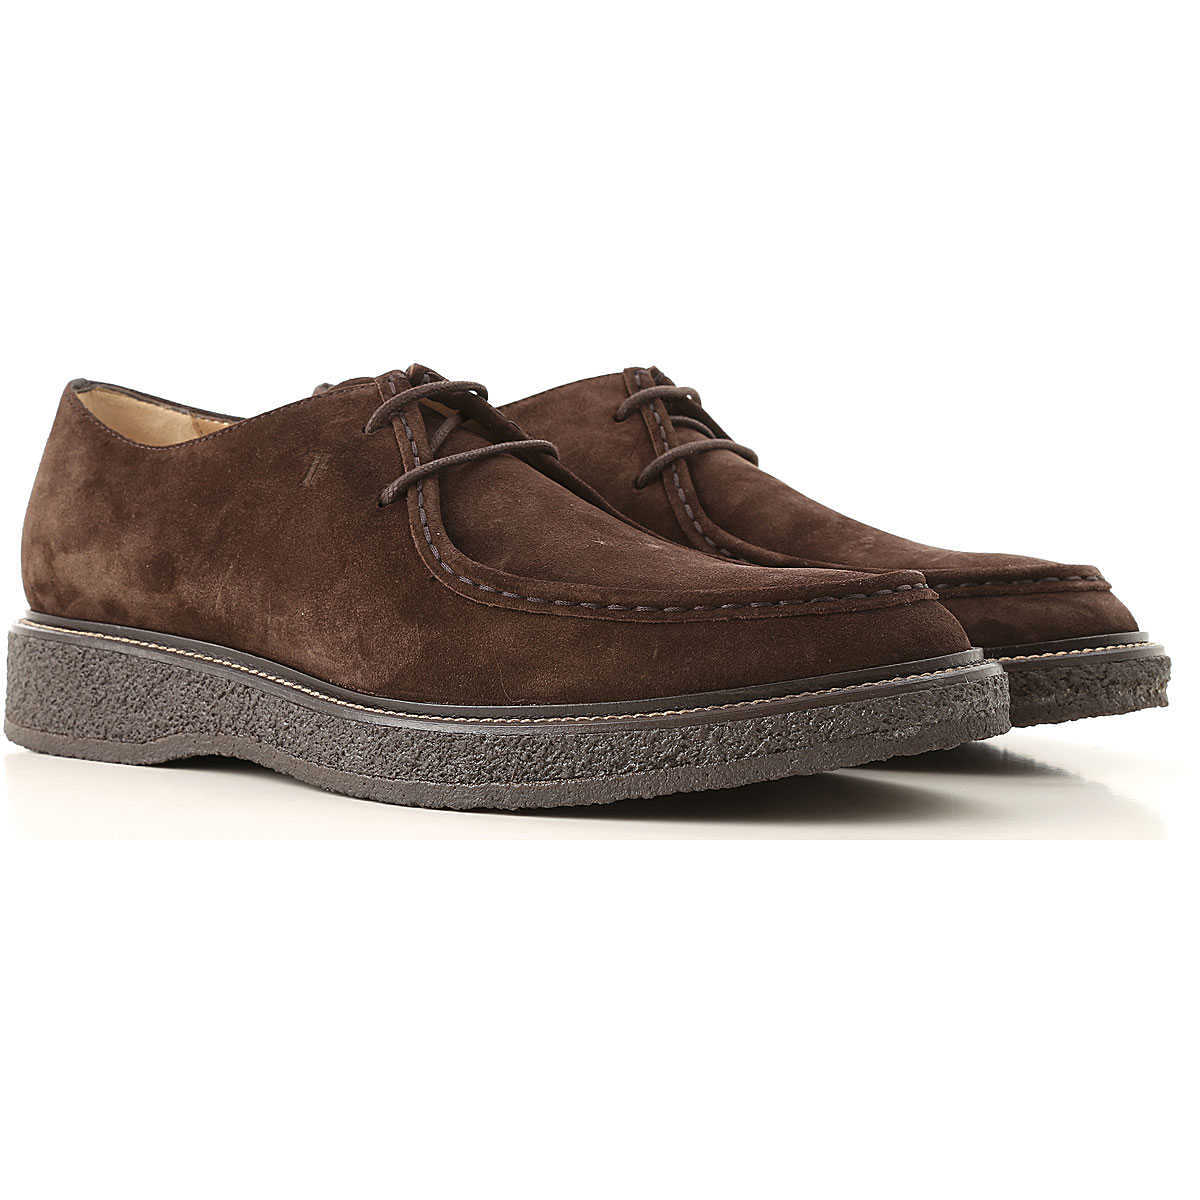 Tods Oxford Shoes for Men On Sale in Outlet Brown DK - GOOFASH - Mens FORMAL SHOES